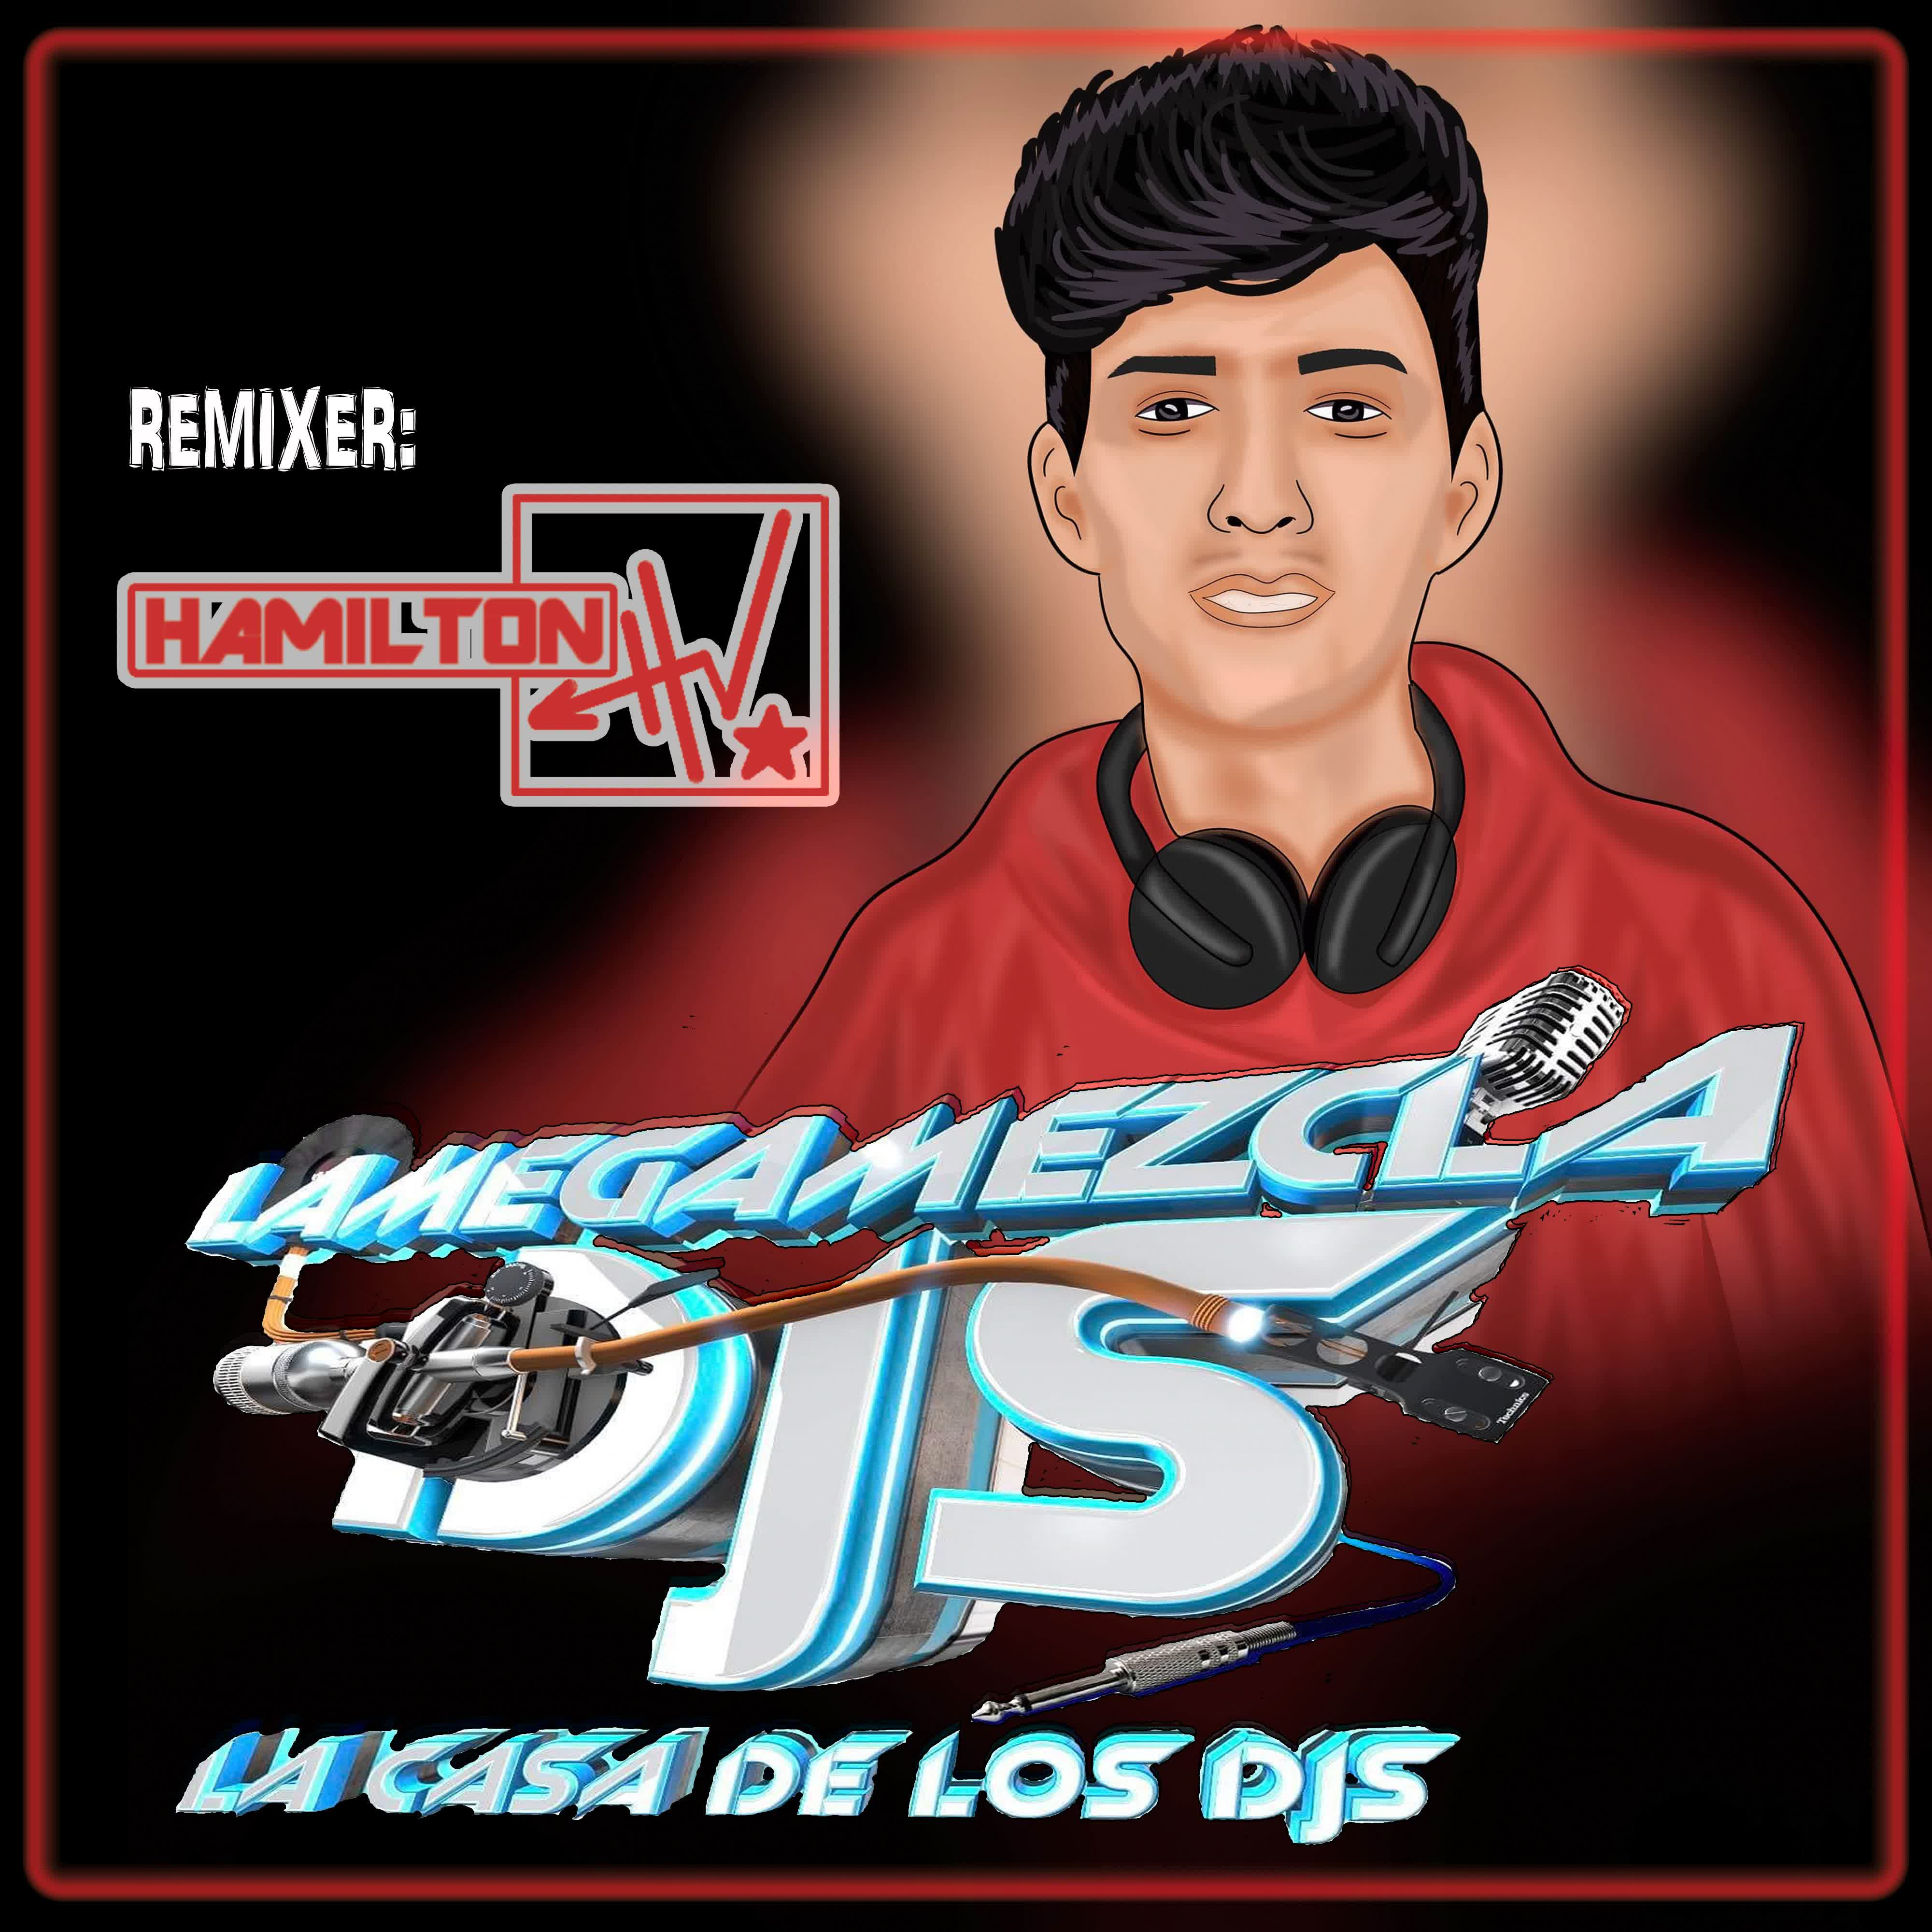 Burn It Up - Wisin & Yandel FT. R Kelly [reggaeton old school](extended 96 BPM)Hamilton HV - www.lamegamezcladjs.com.mp3